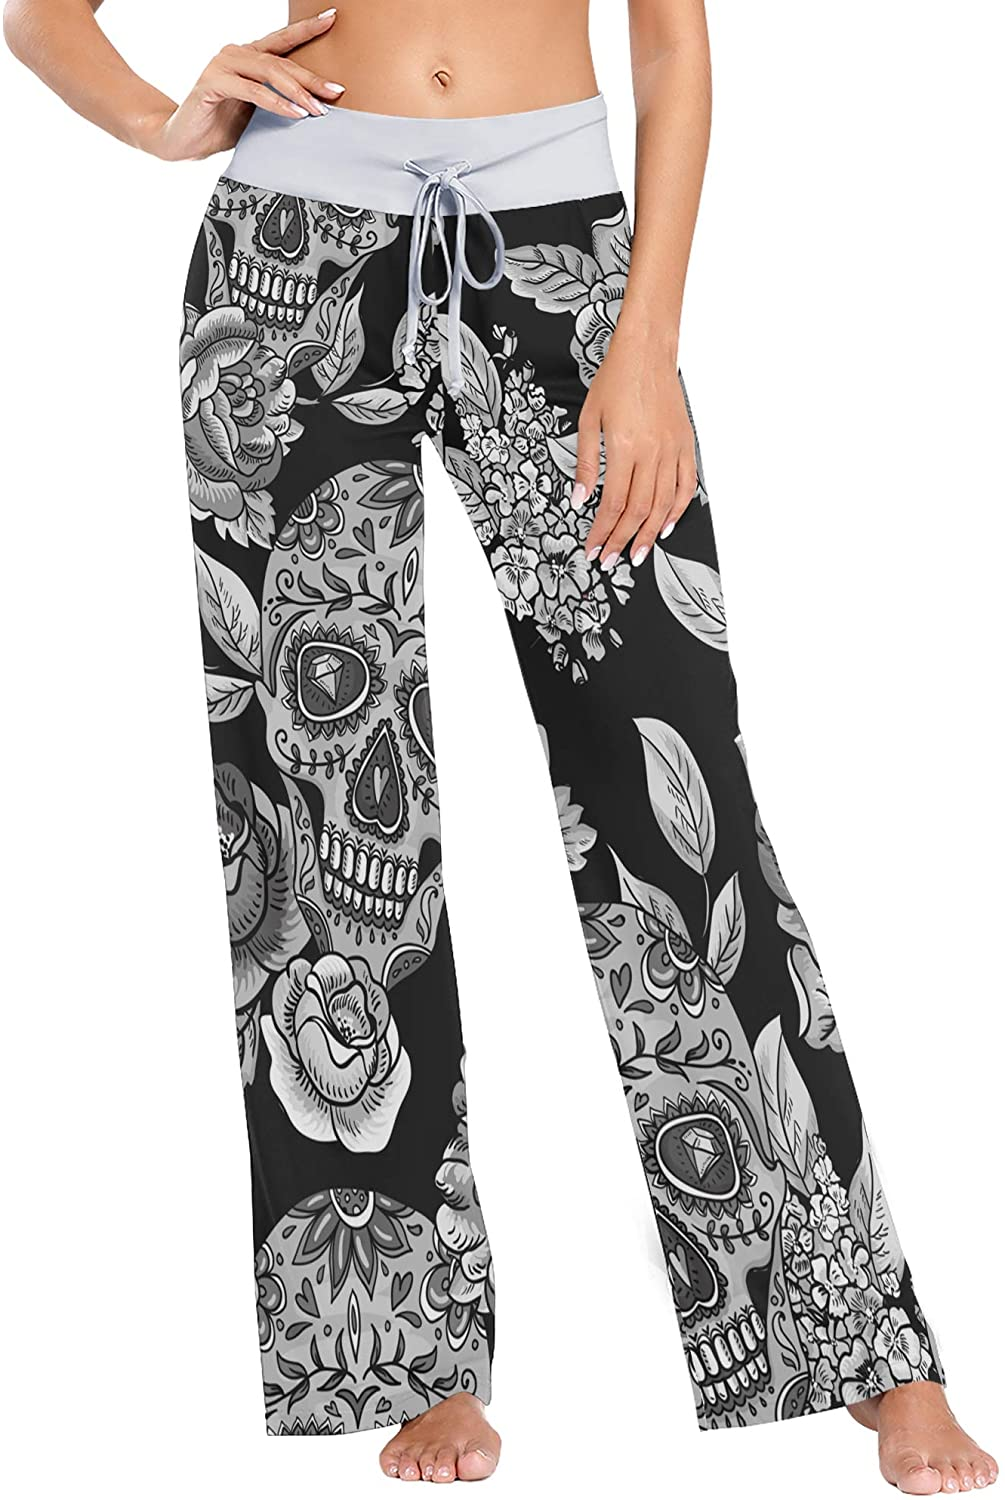 Art Pattern Skull Flowers Seamless Women Loose Palazzo Casual Drawstring Sleepwear Print Yoga Pants